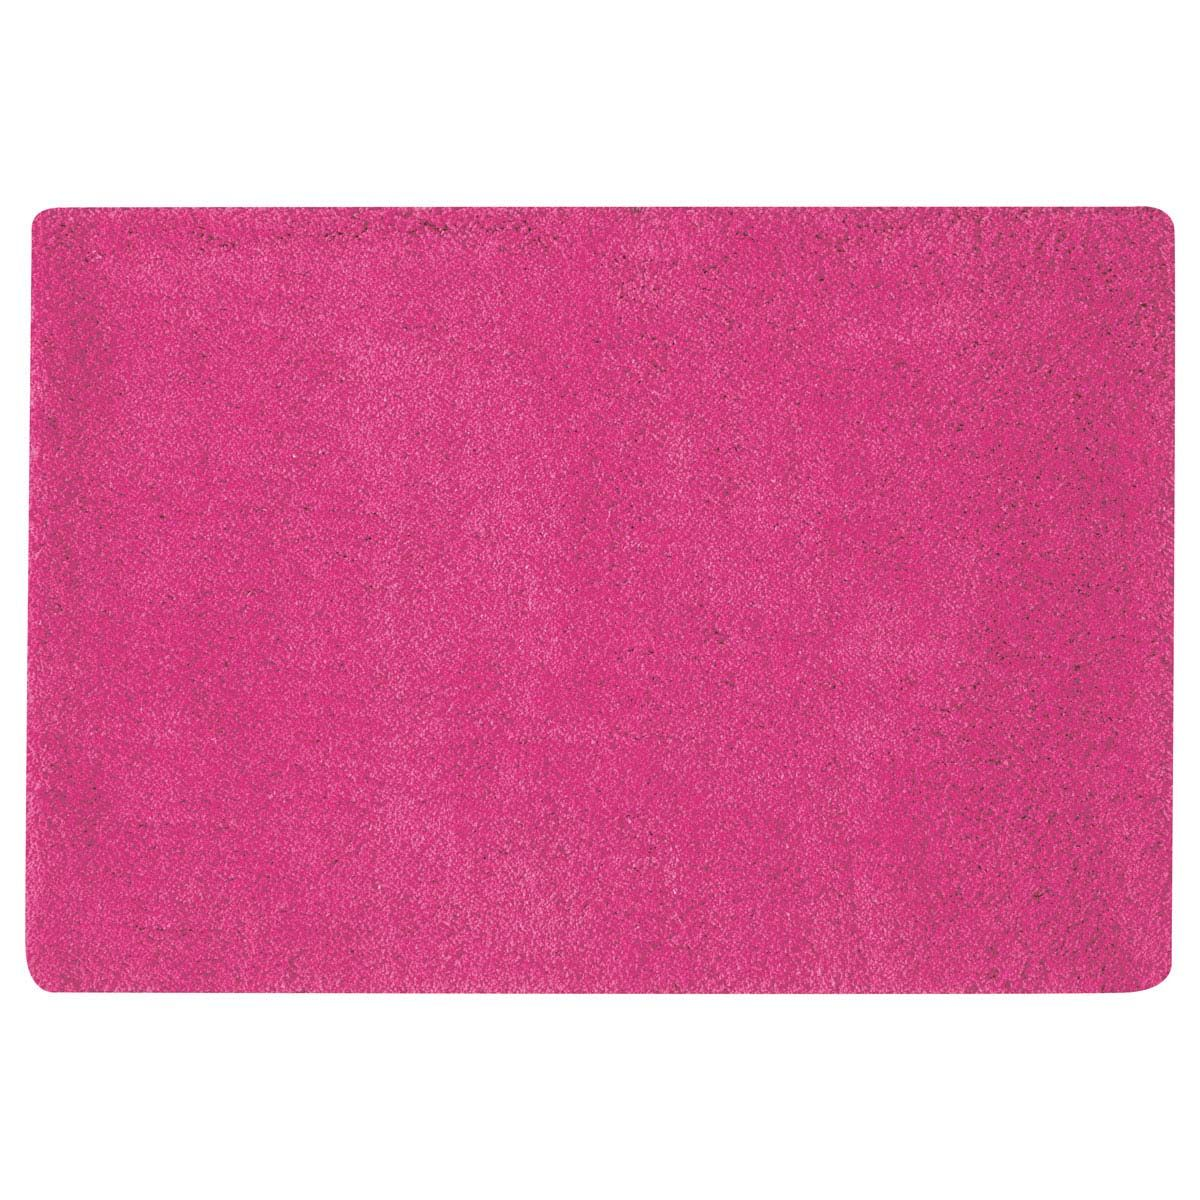 Tapis à poils longs rose fuchsia 120 x 180 cm MAGIC | chambre romane ...